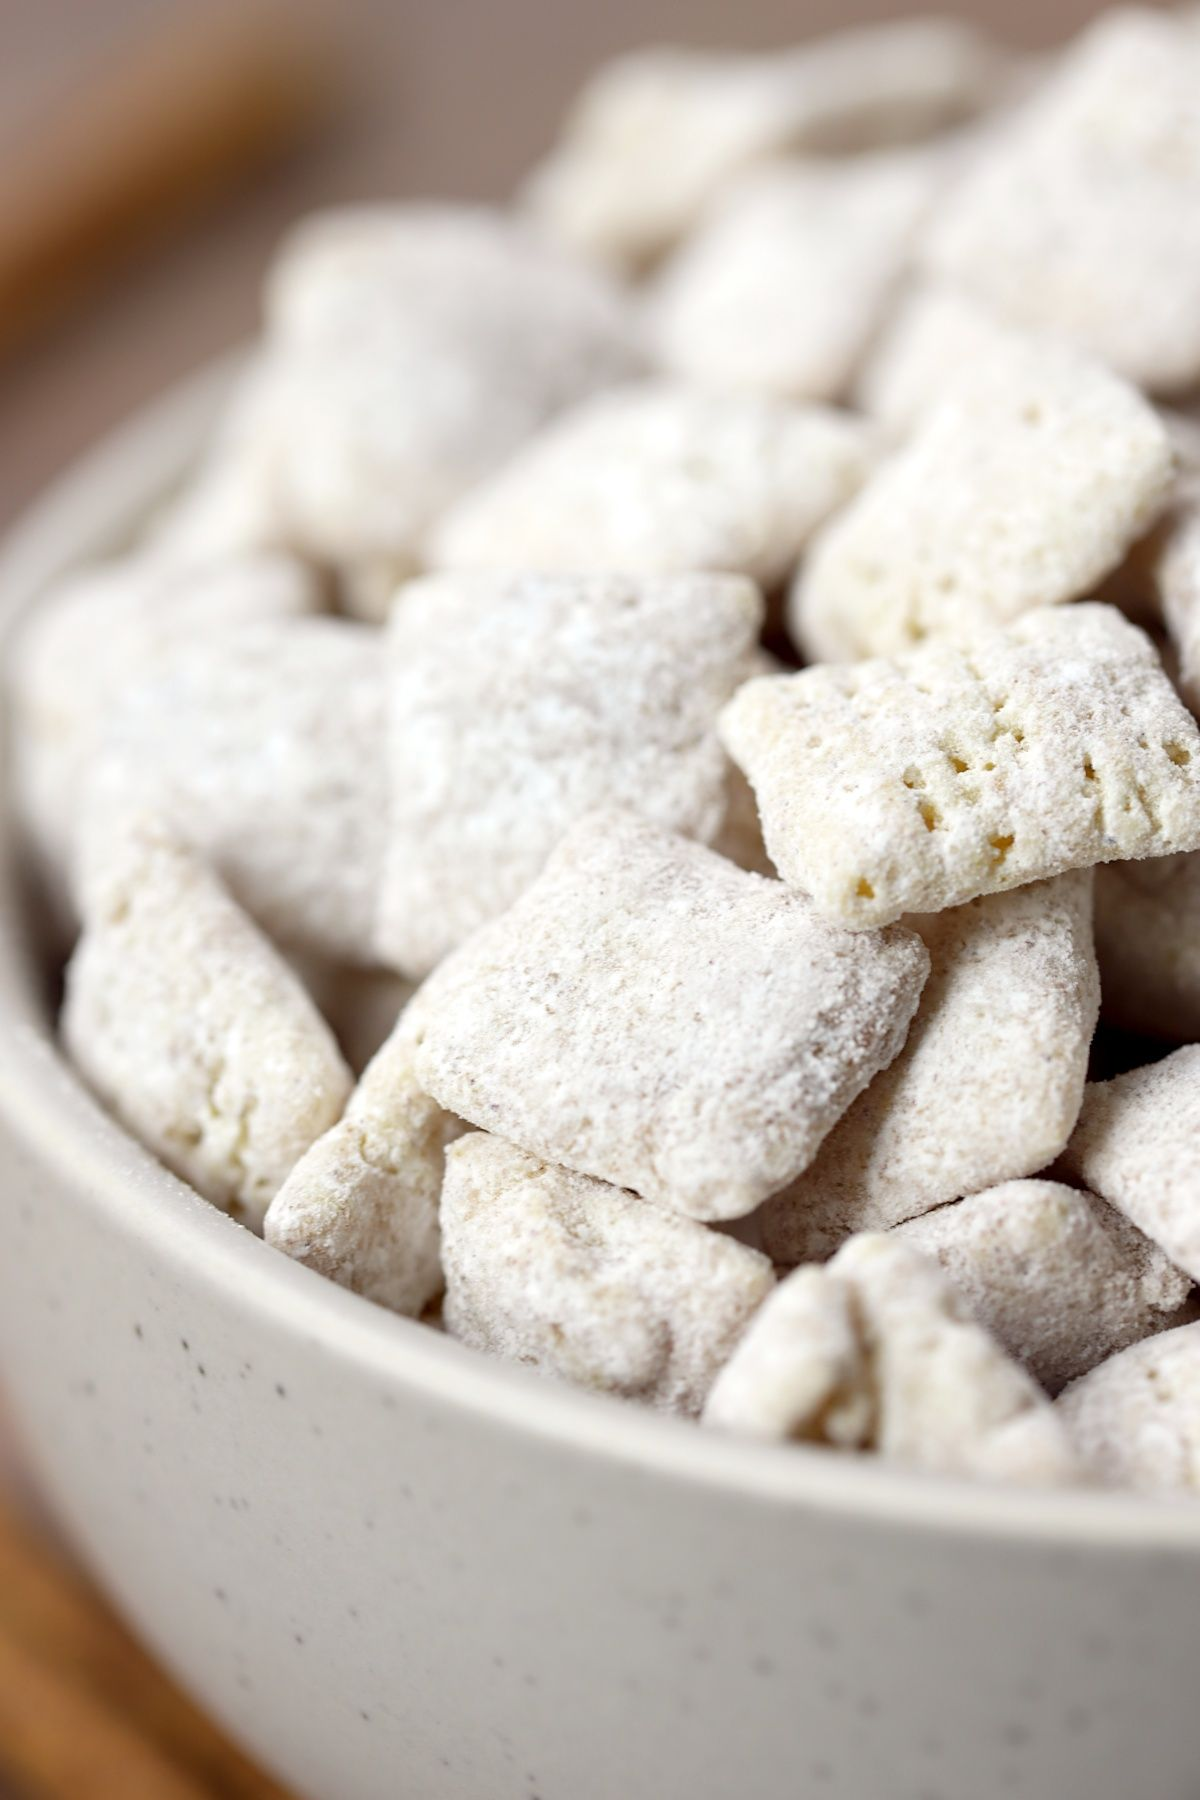 Snickerdoodle Puppy Chow Snack Mix The Toasty Kitchen Lemon Puppy Chow Puppy Chow Snack Mix Puppy Chow Snack